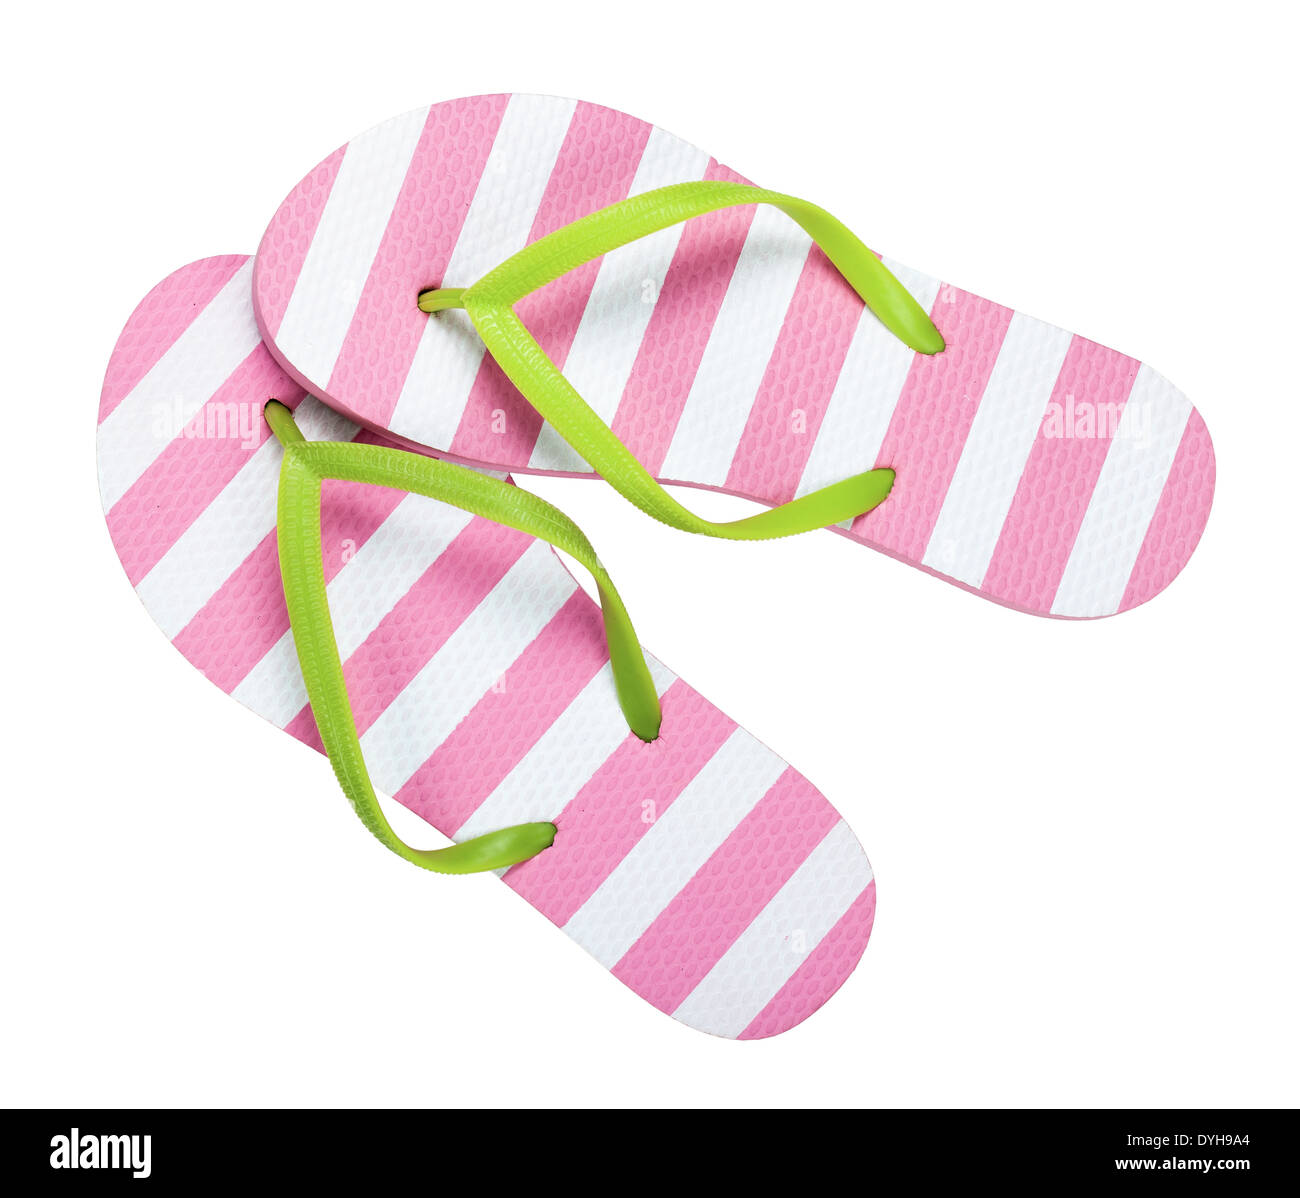 f9d5dfab466c Flip flops isolated on white background. Top view Stock Photo ...